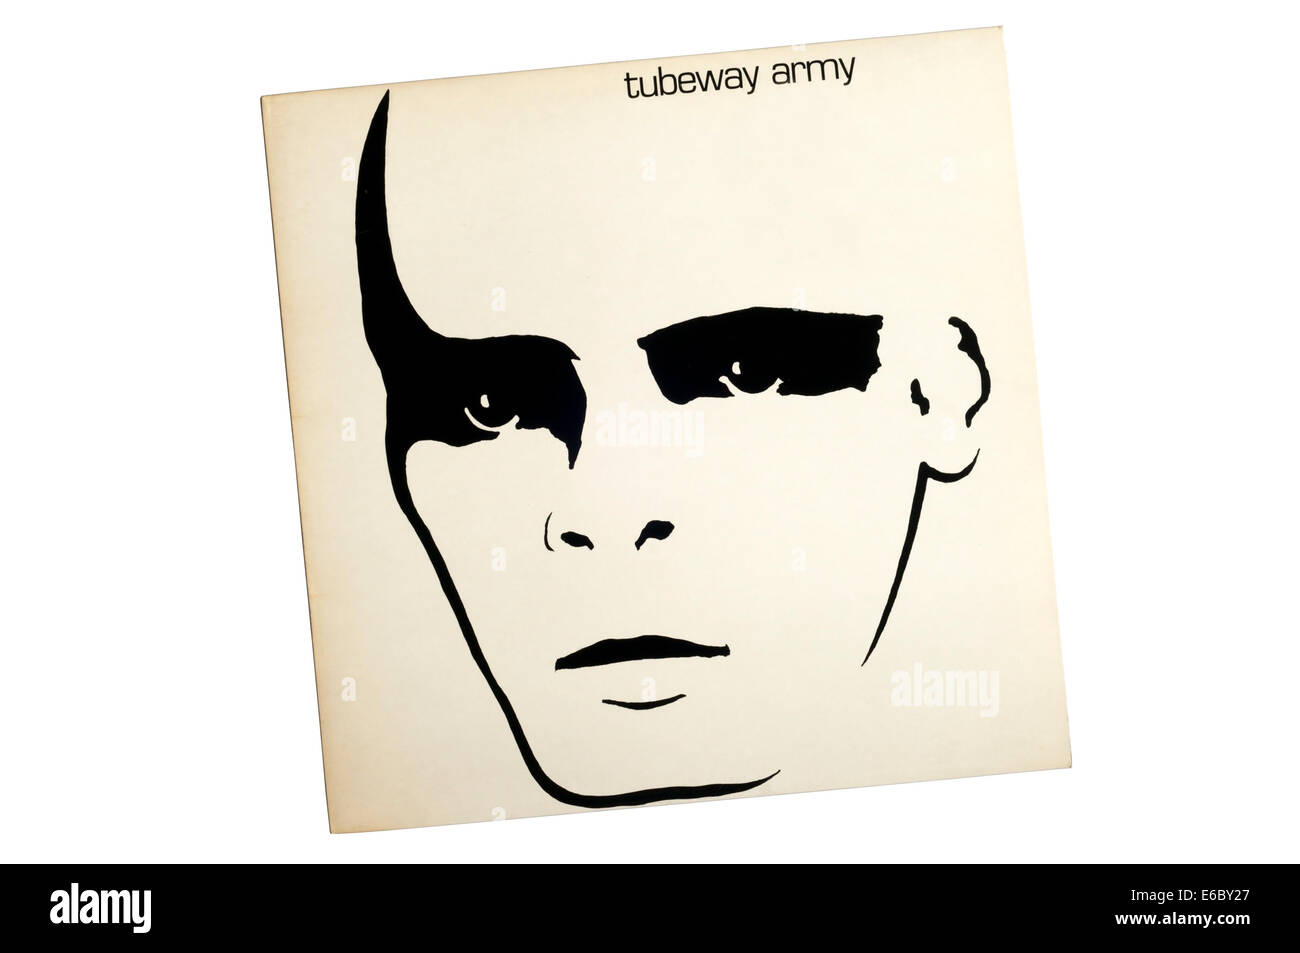 Tubeway Army was the eponymous debut album by Tubeway Army, released in 1978. - Stock Image